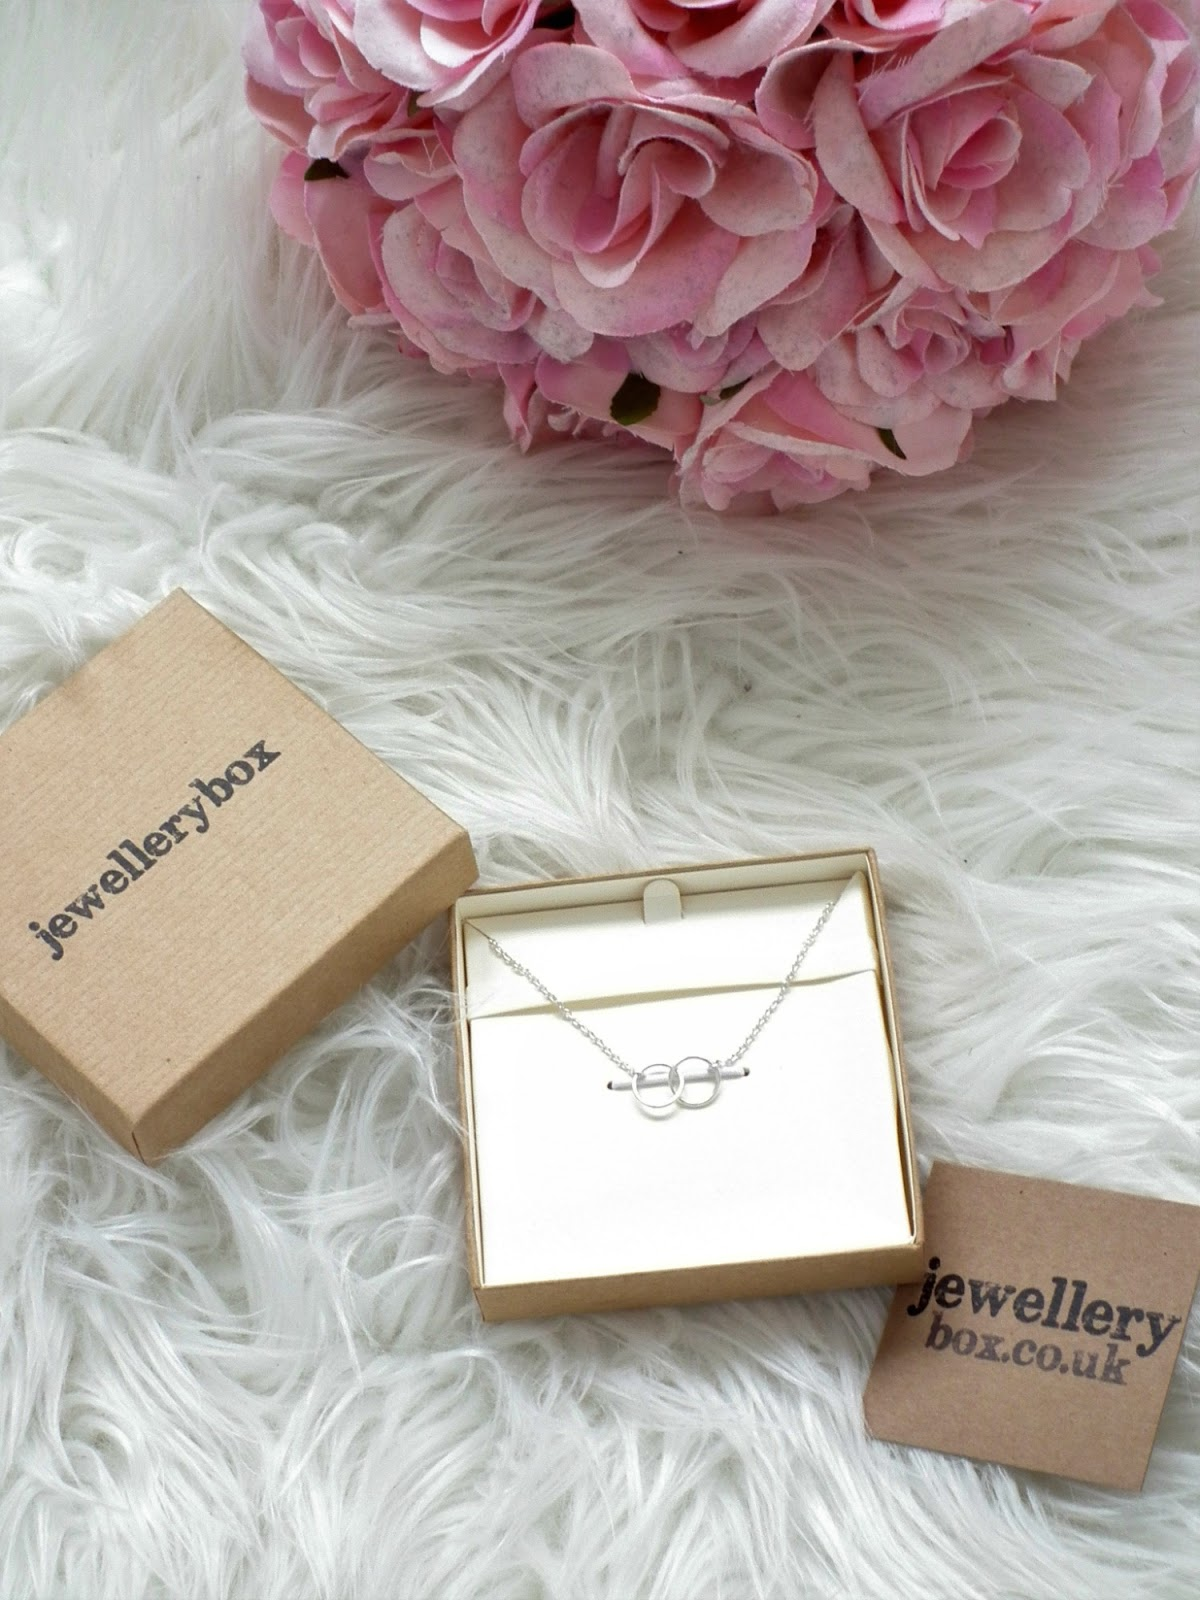 5 Things You Don't Need To Be Happy ft JewelleryBox*